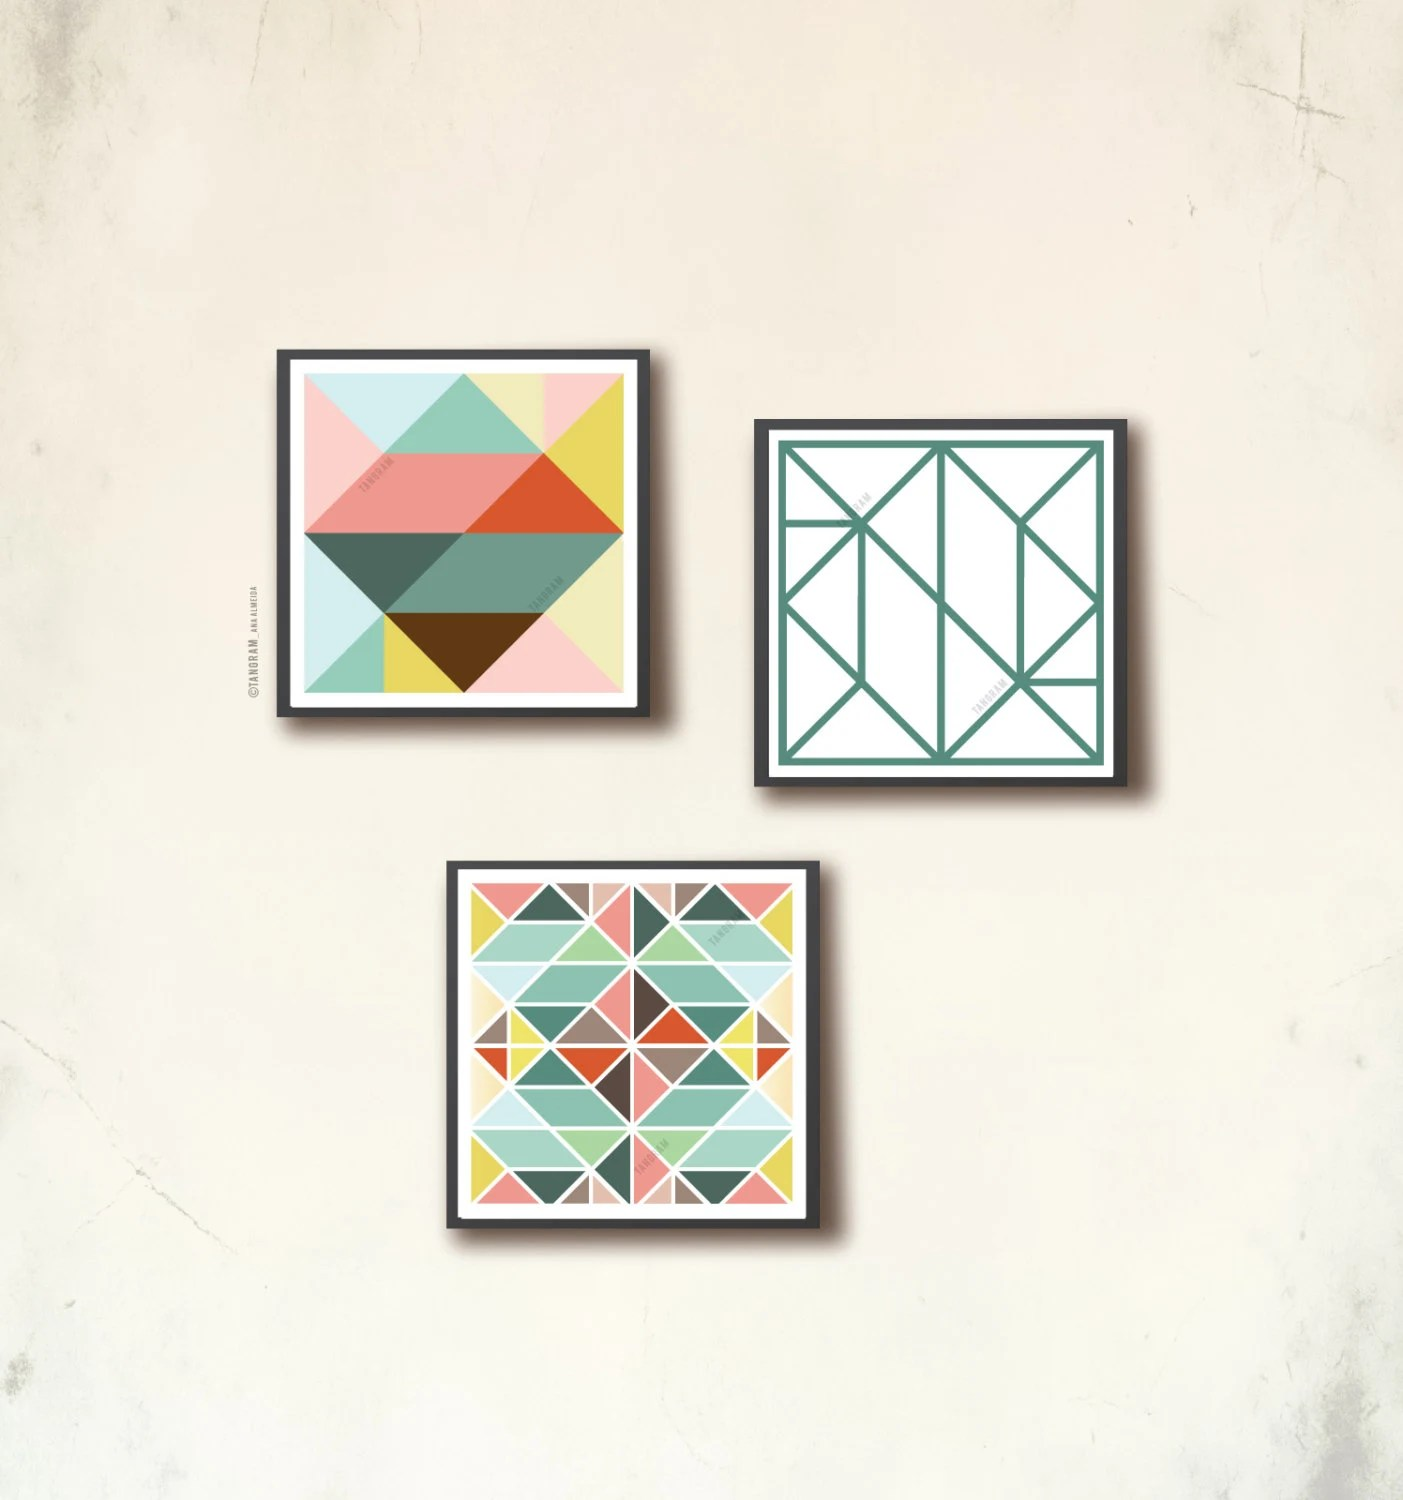 Affiches Scandinaves Scandinavian Poster Set Ii Three 12 X 12 In Geometric Art Prints Affiches Scandinaves Tangram Squares By Tangramartworks